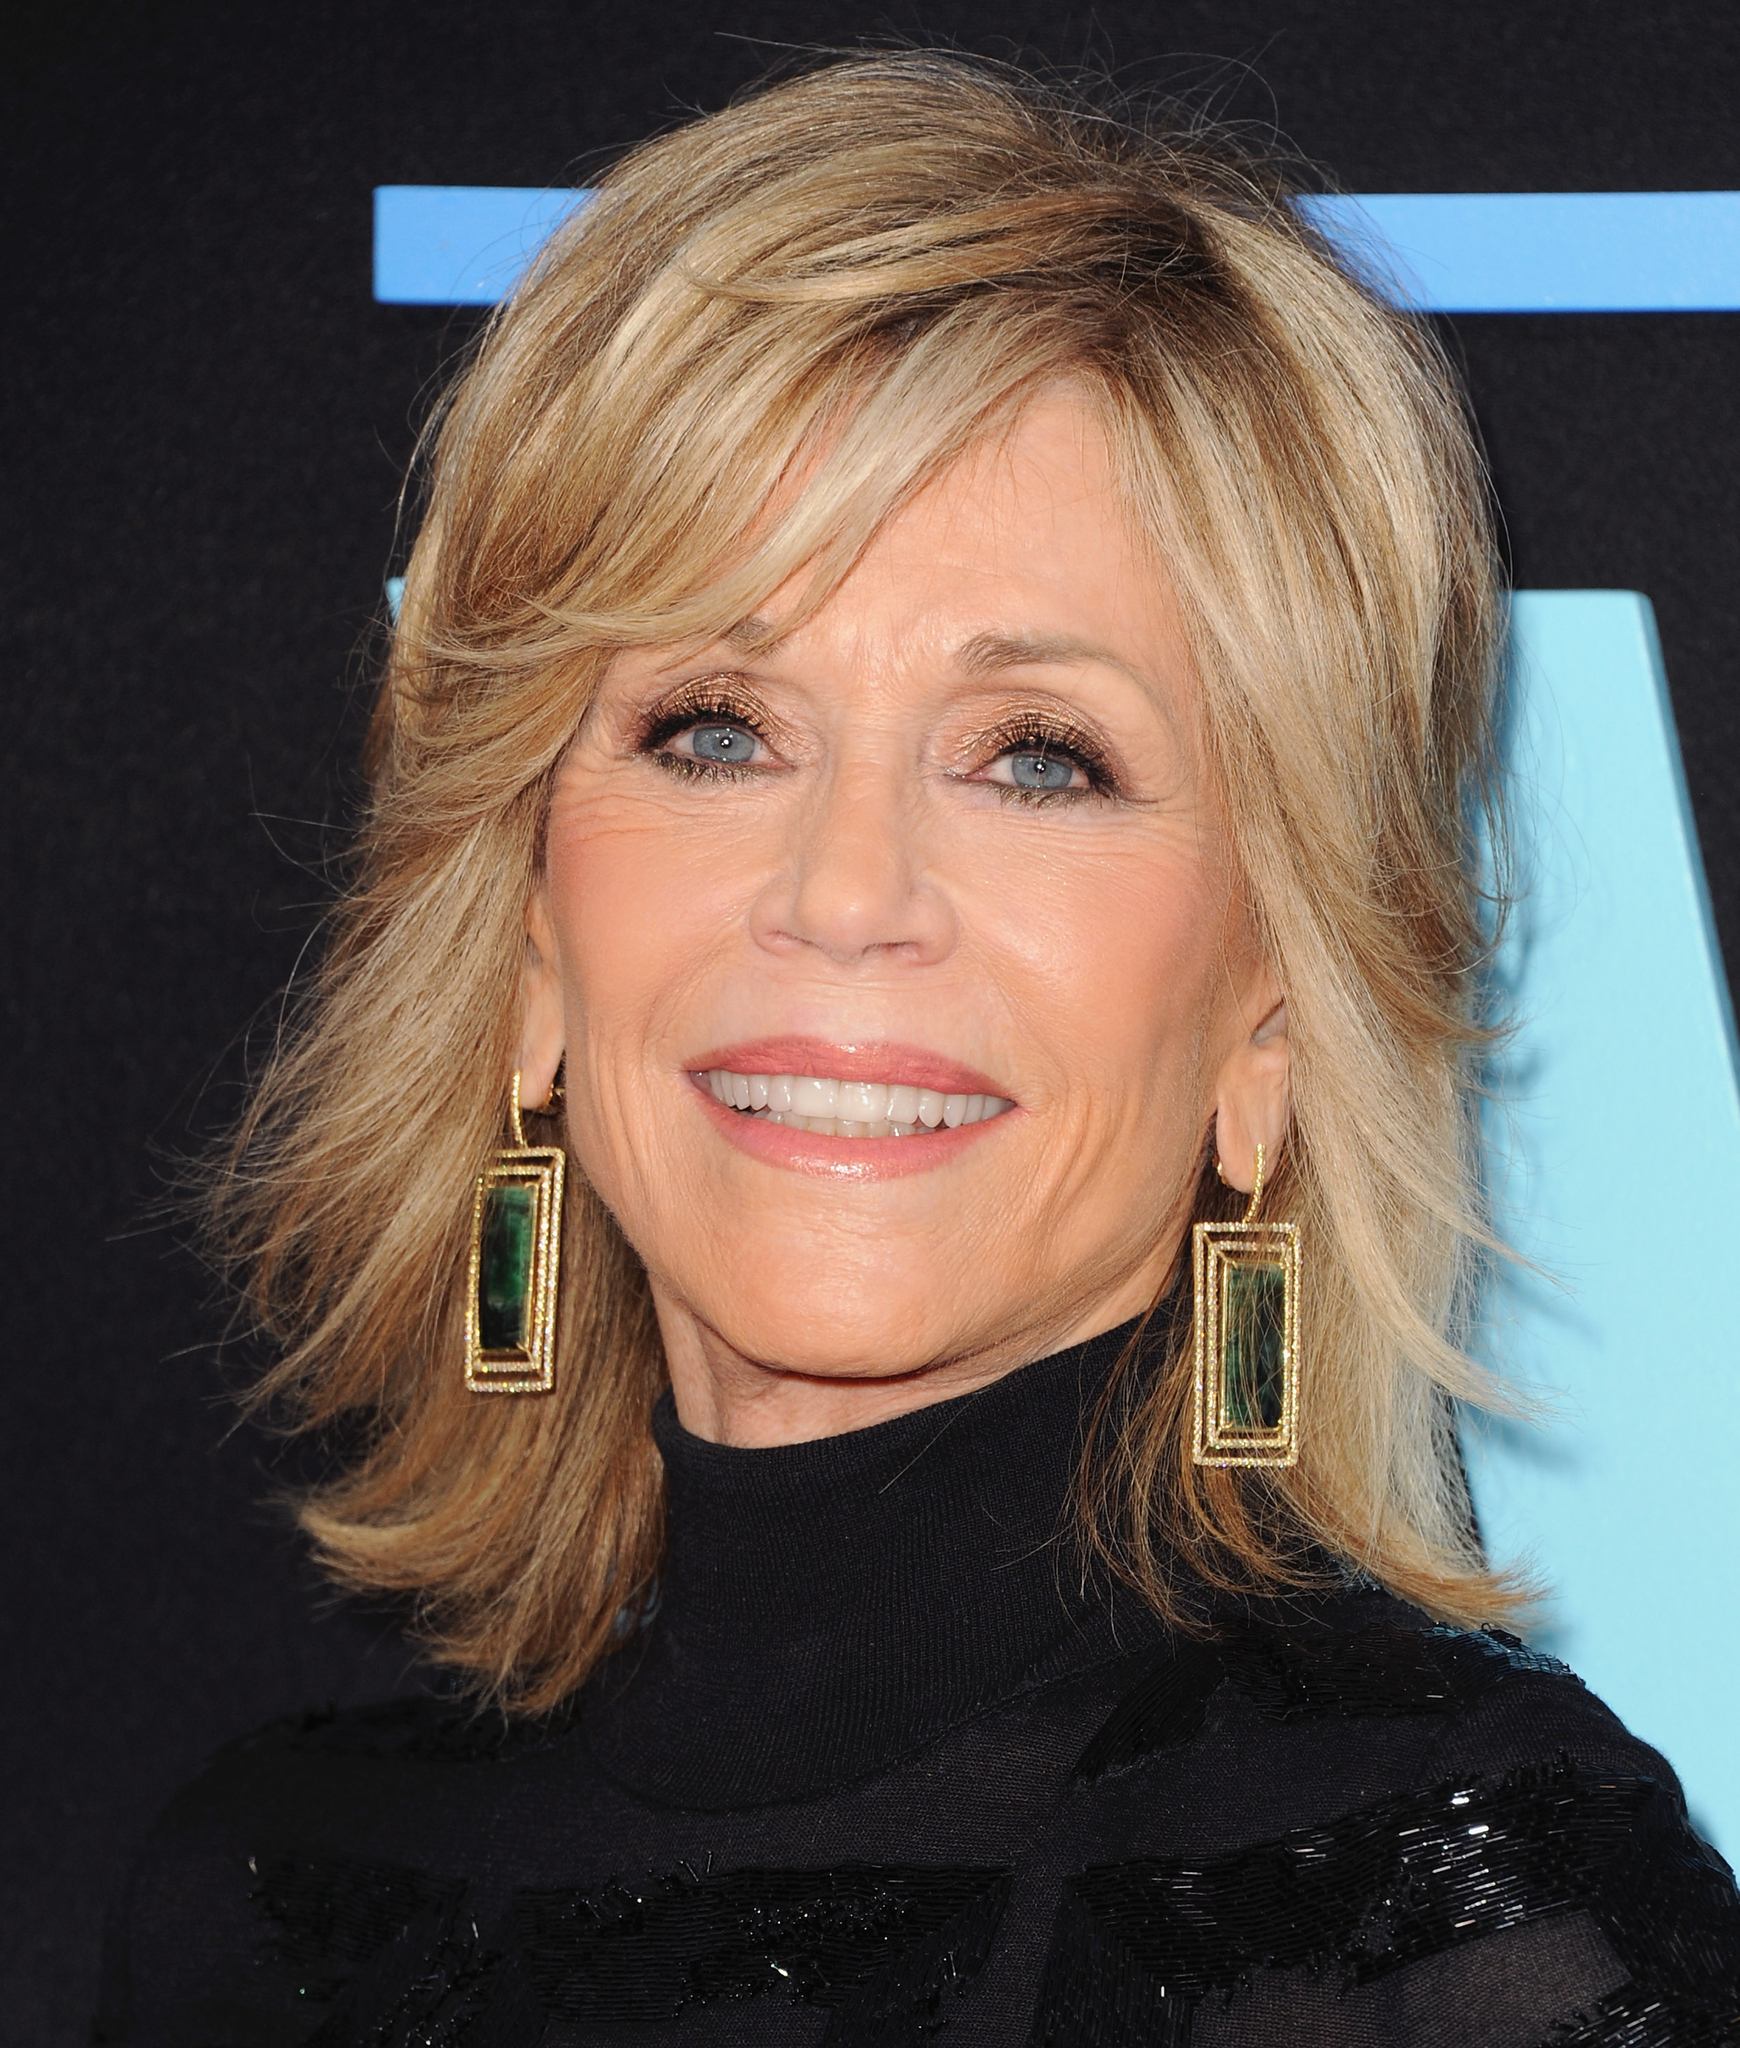 Image result for Jane Fonda images